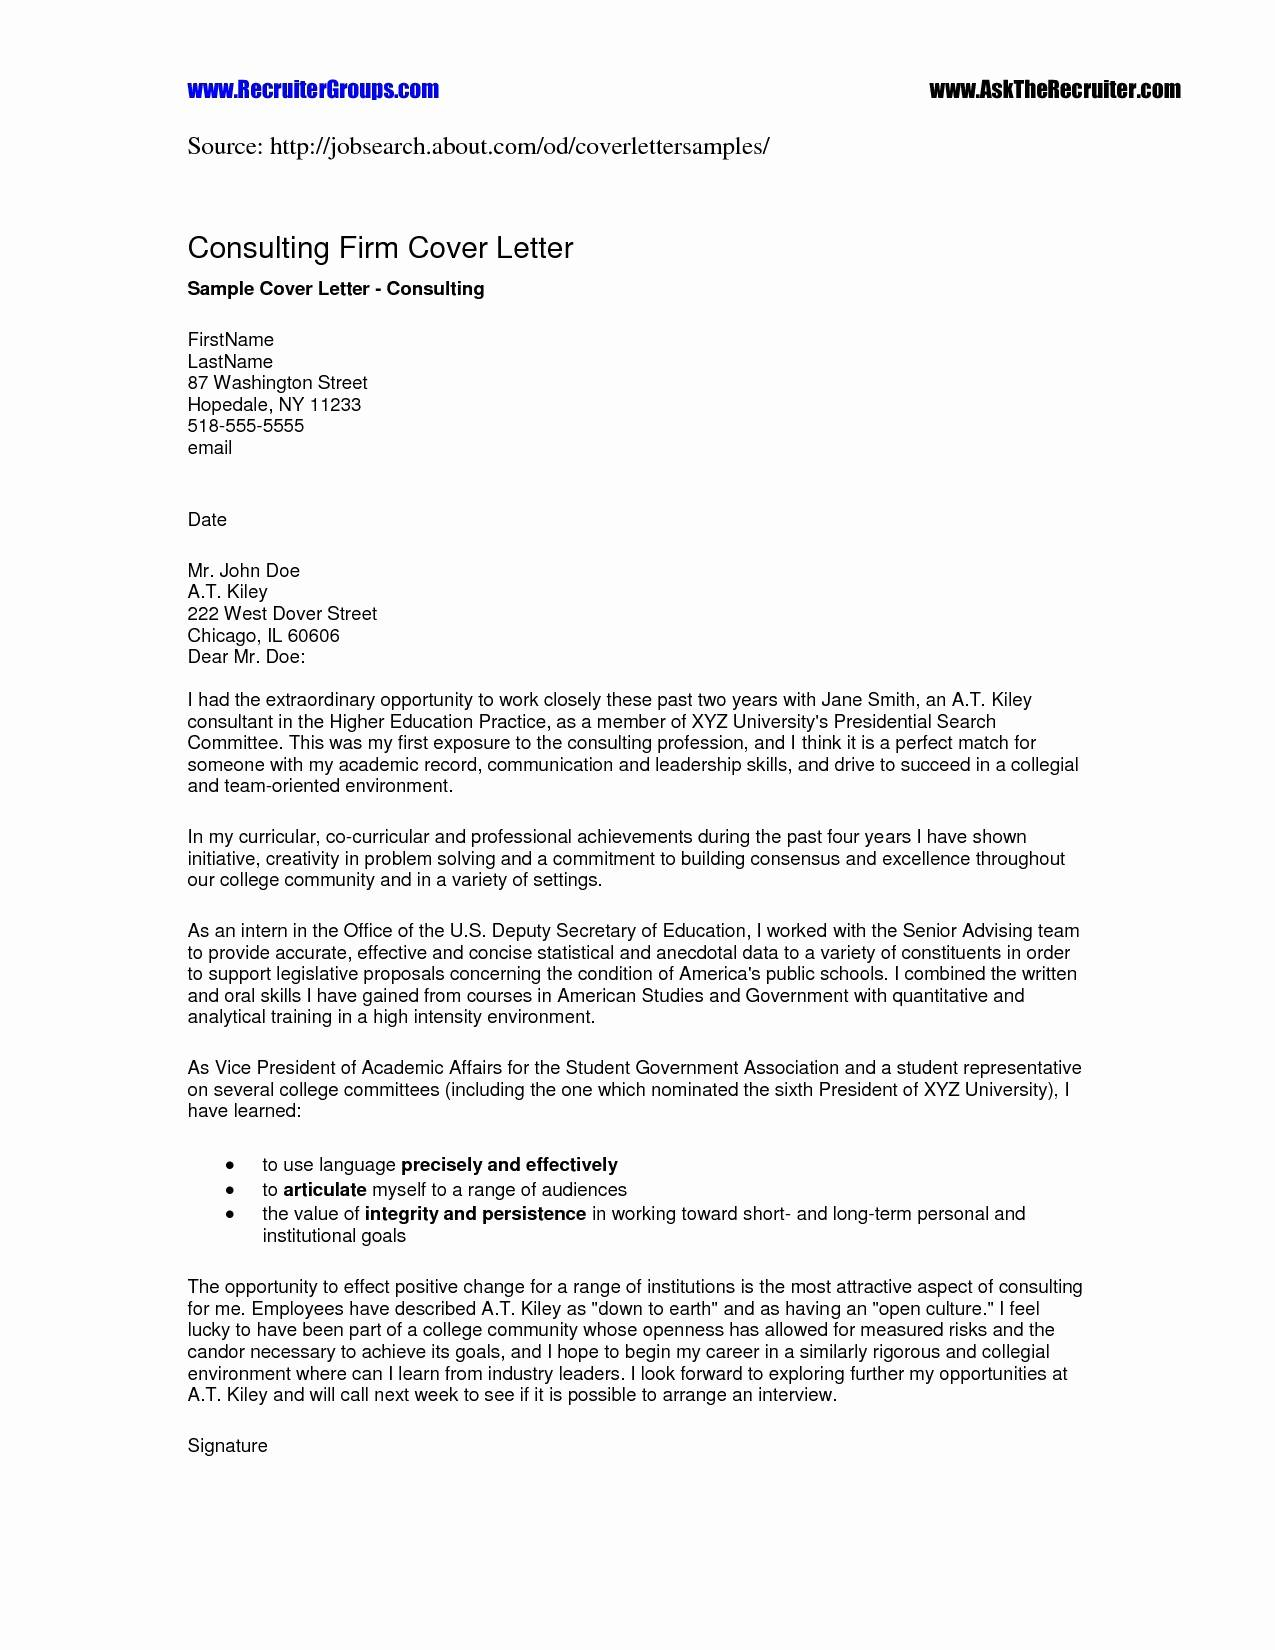 Professional Reference Letter Template - Certificate Good Moral Character Template Unique 30 Inspirational